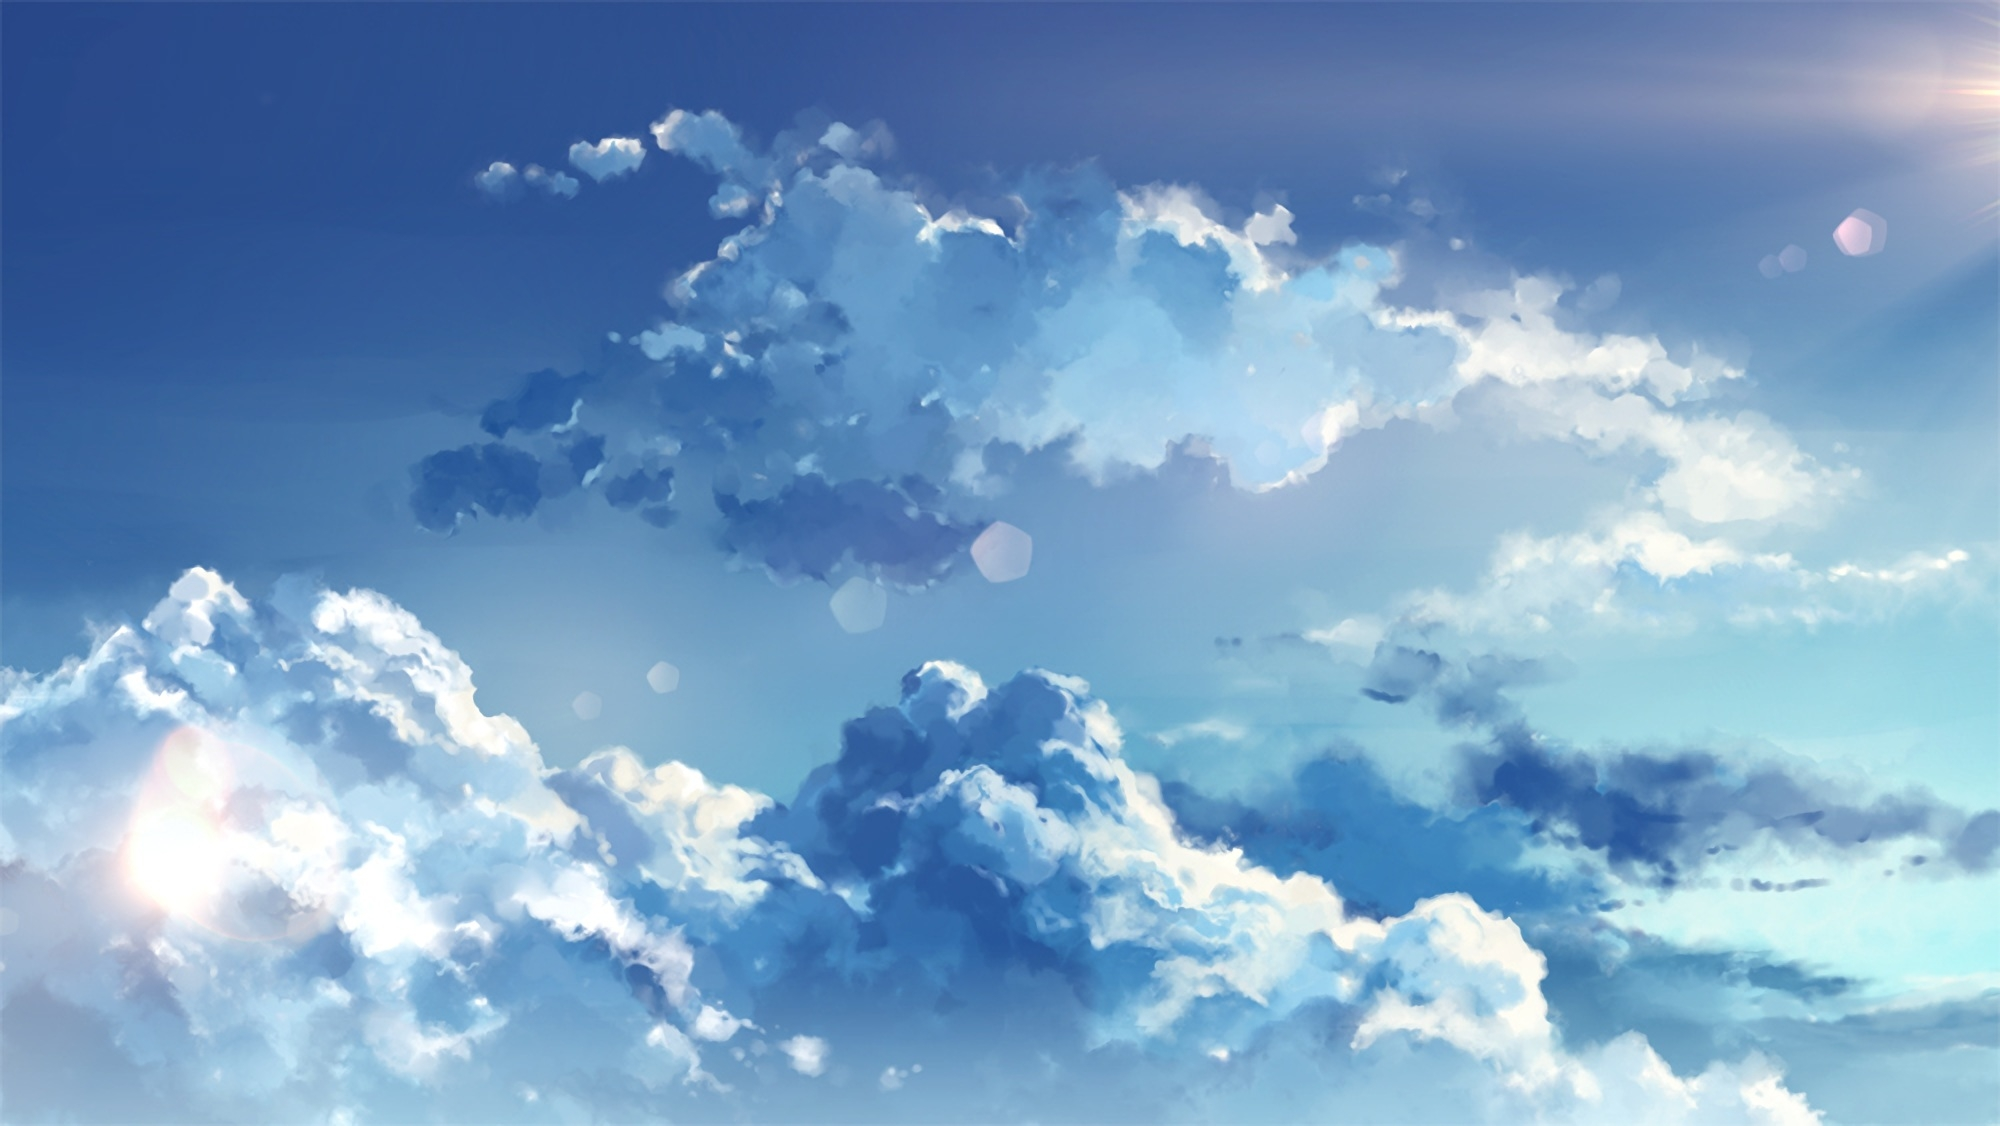 Sky Anime Wallpaper Anime Clouds Sky Wallpapermaiden